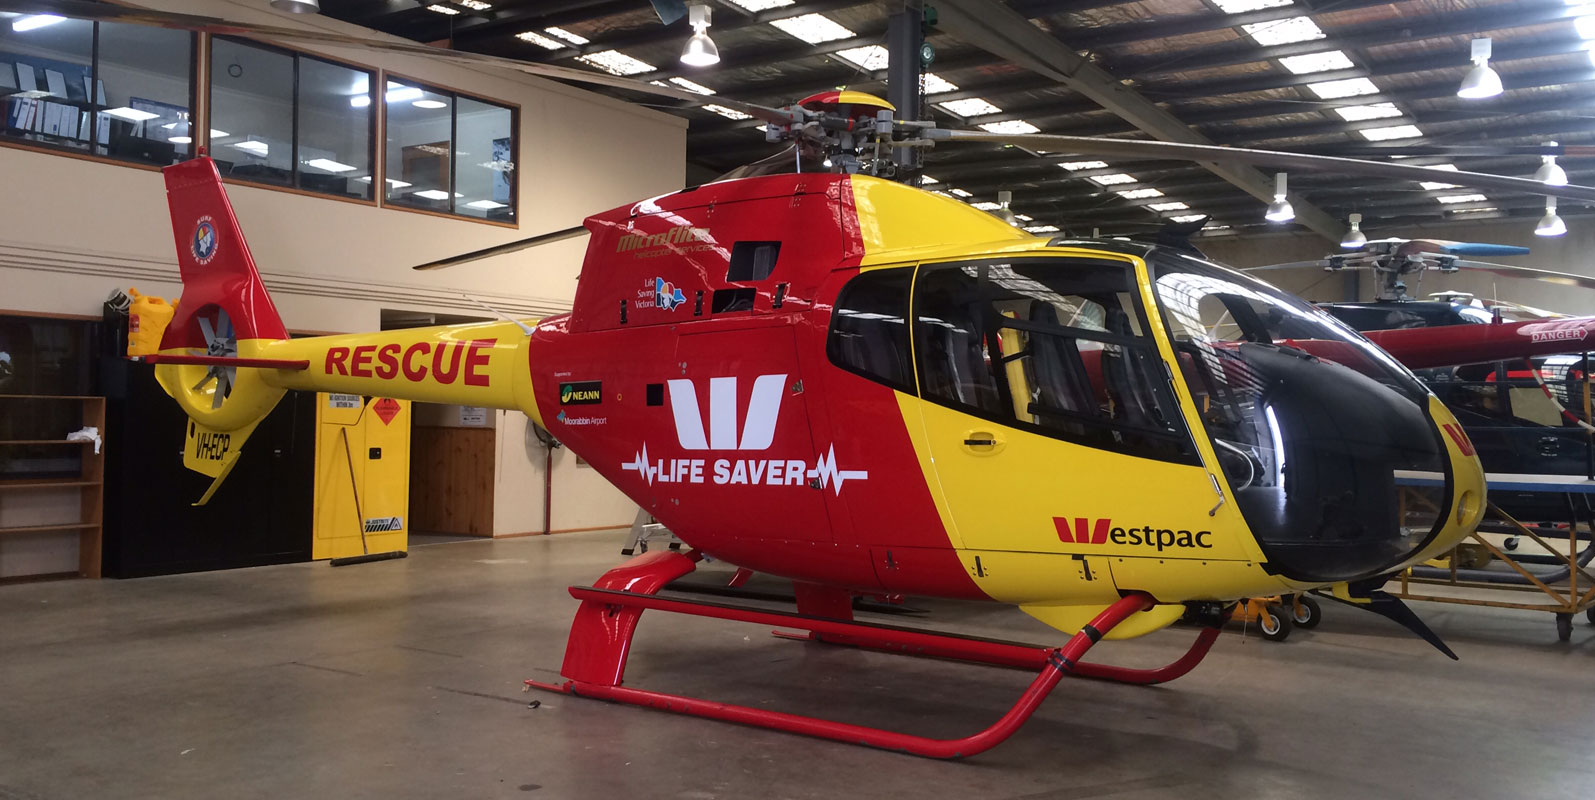 westpac-rescue-helicopter-corporate-signage